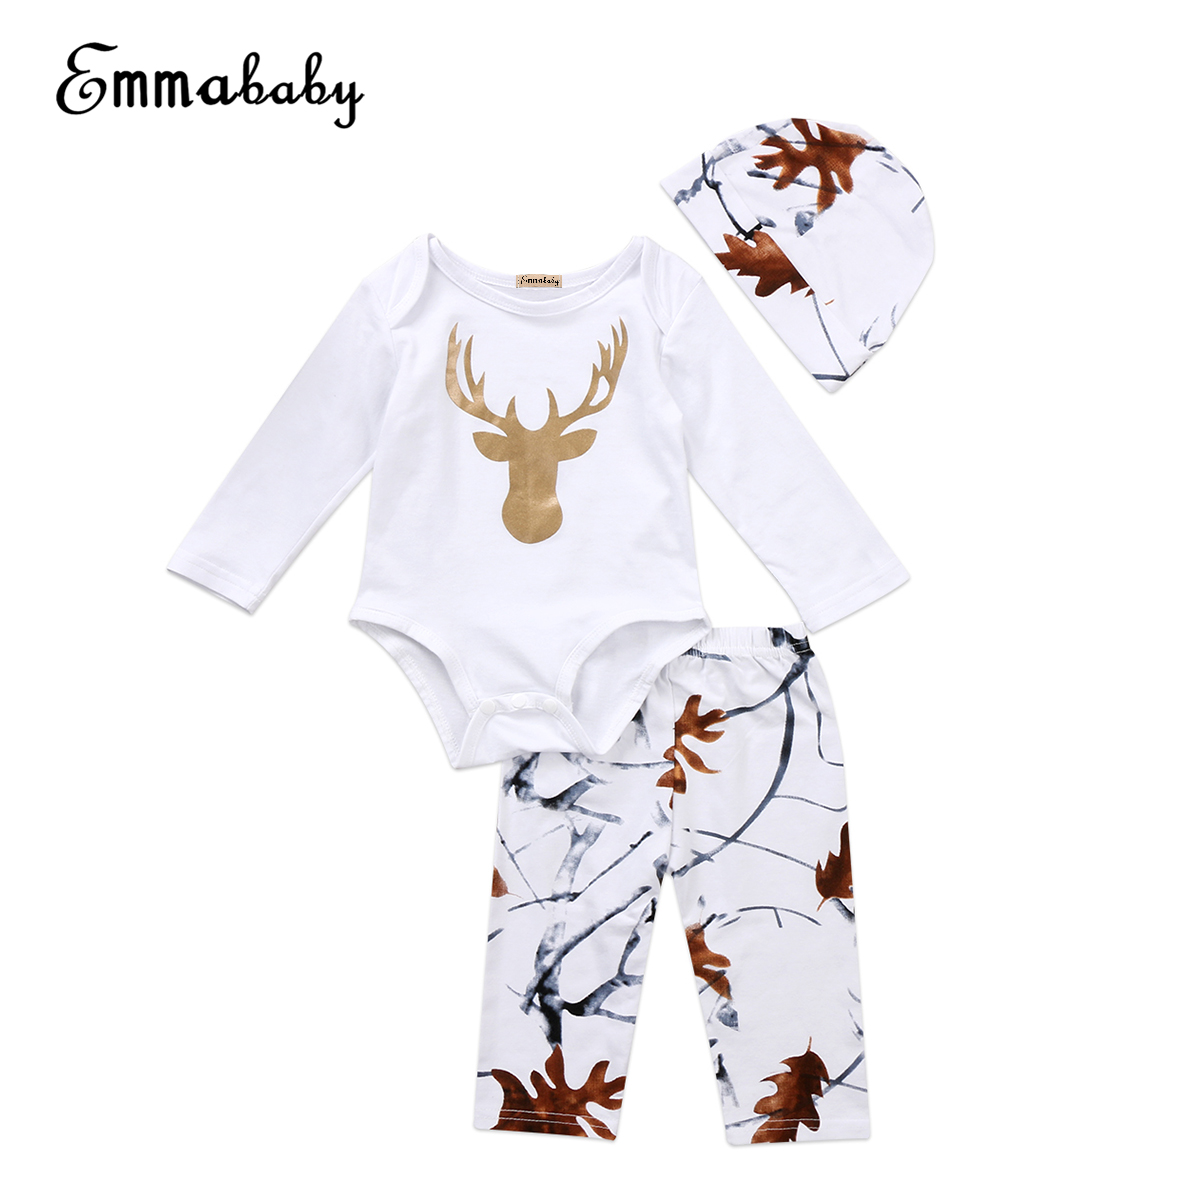 2018 New Fashion 3Pcs Lovely Baby Set Infant Baby Boy Girl Autumn Long Sleeve Clothes Bodysuit Jumpsuit Pants Cute Outfits Set